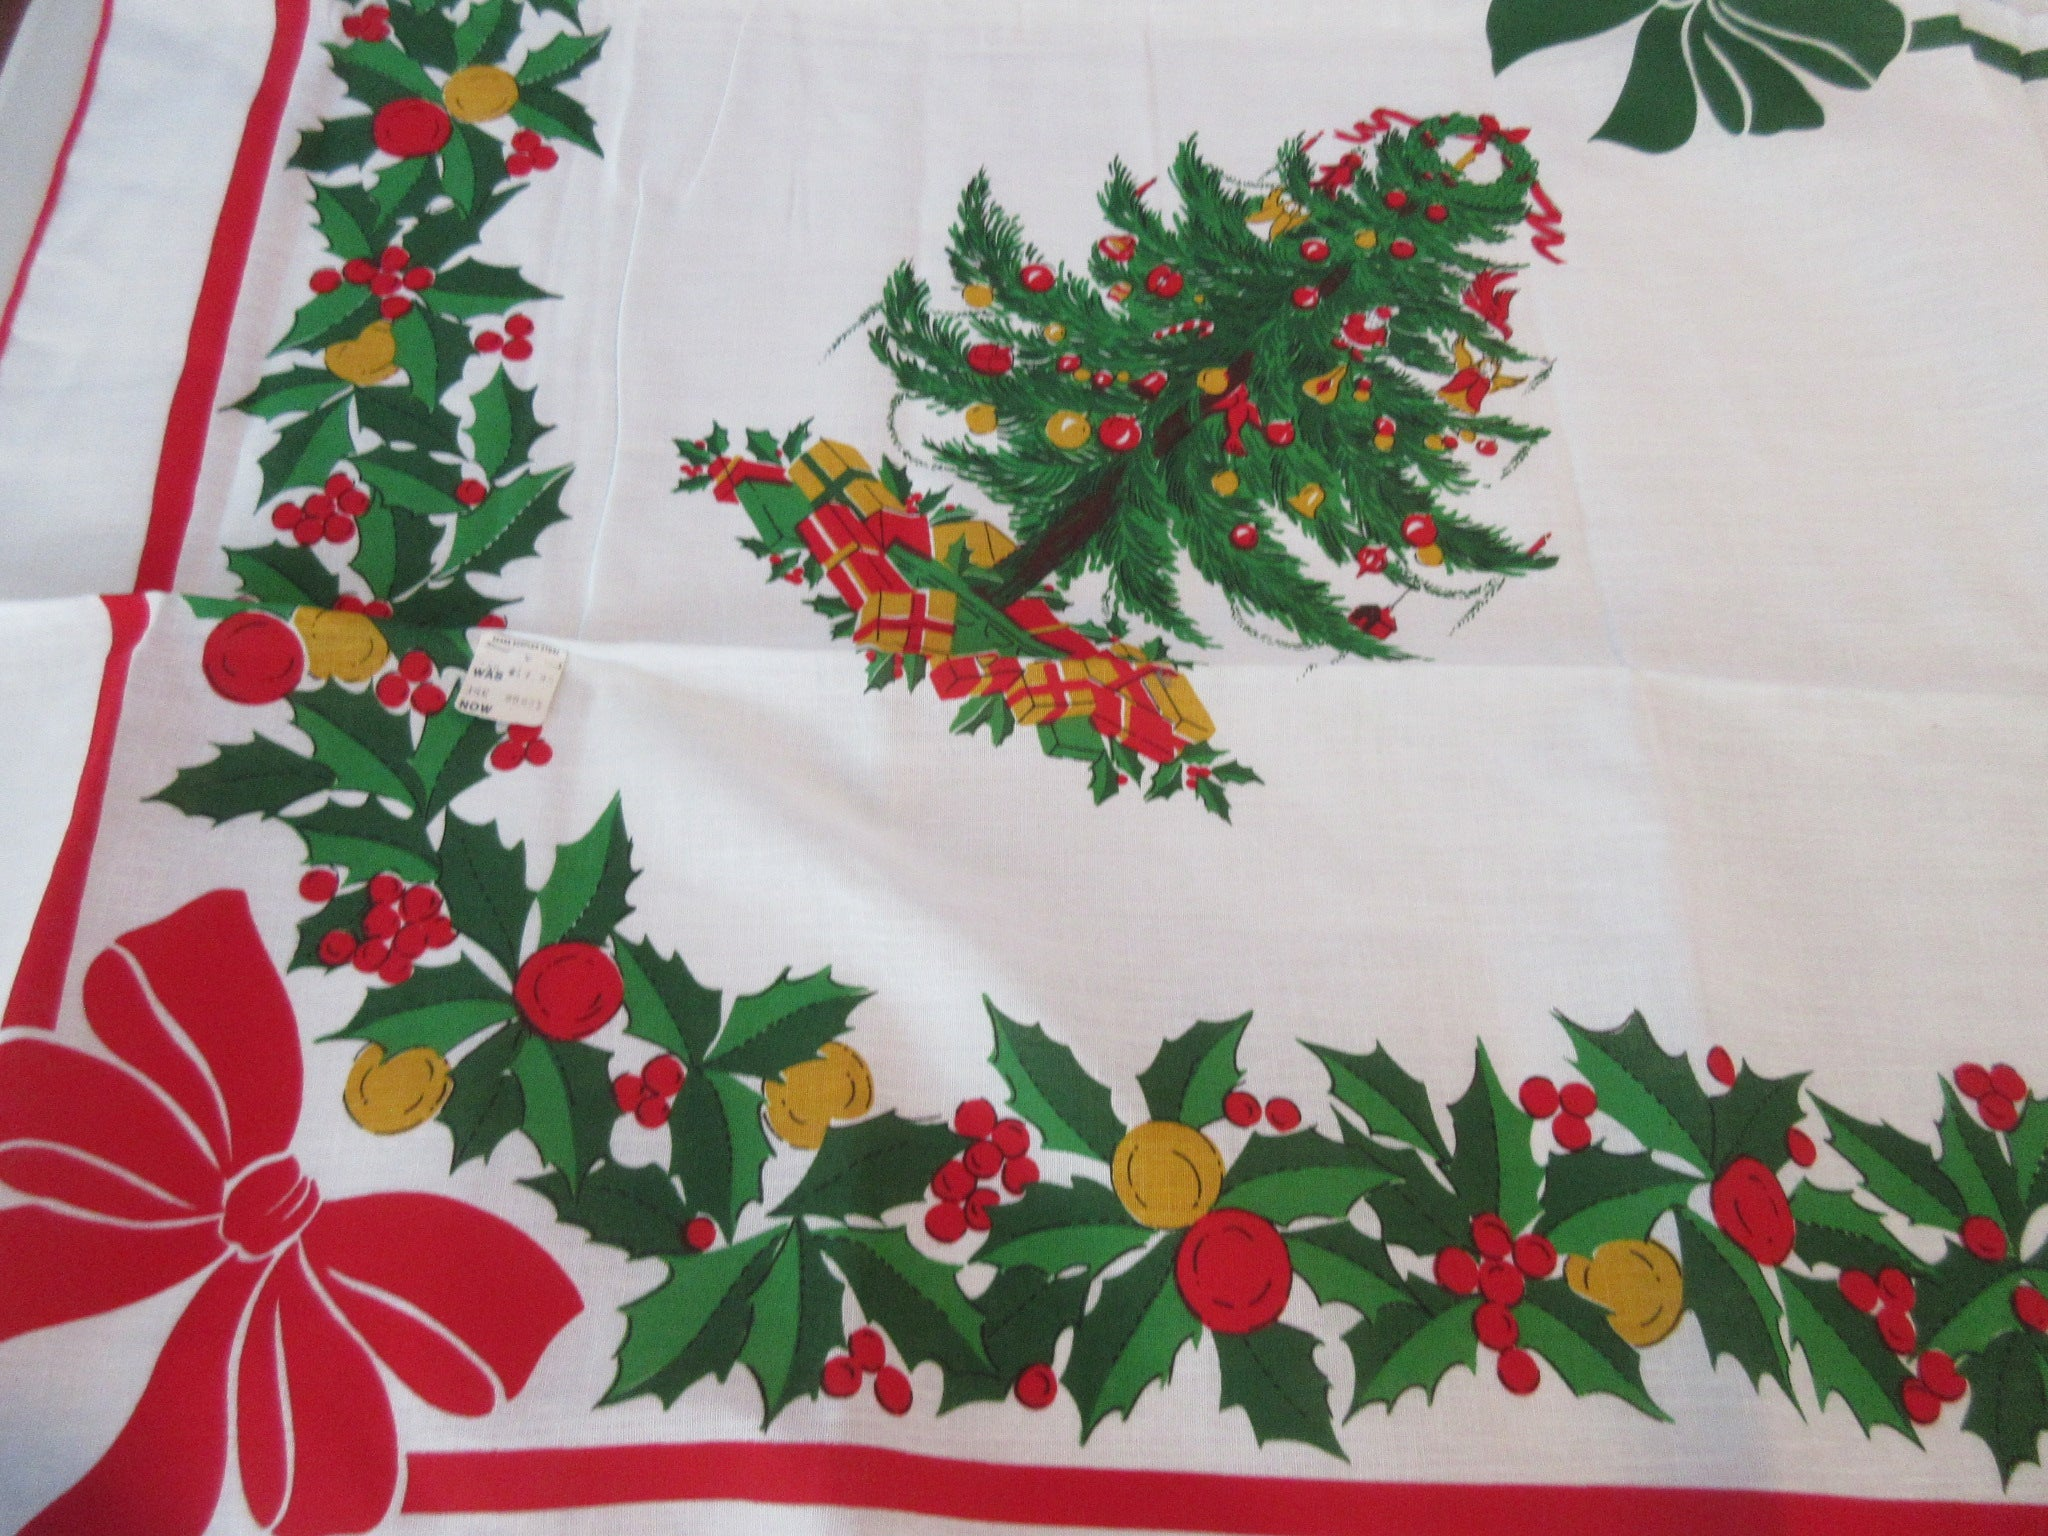 RECTANGULAR Primary Christmas Trees NOS Novelty Vintage Printed Tablecloth (83 X 60)